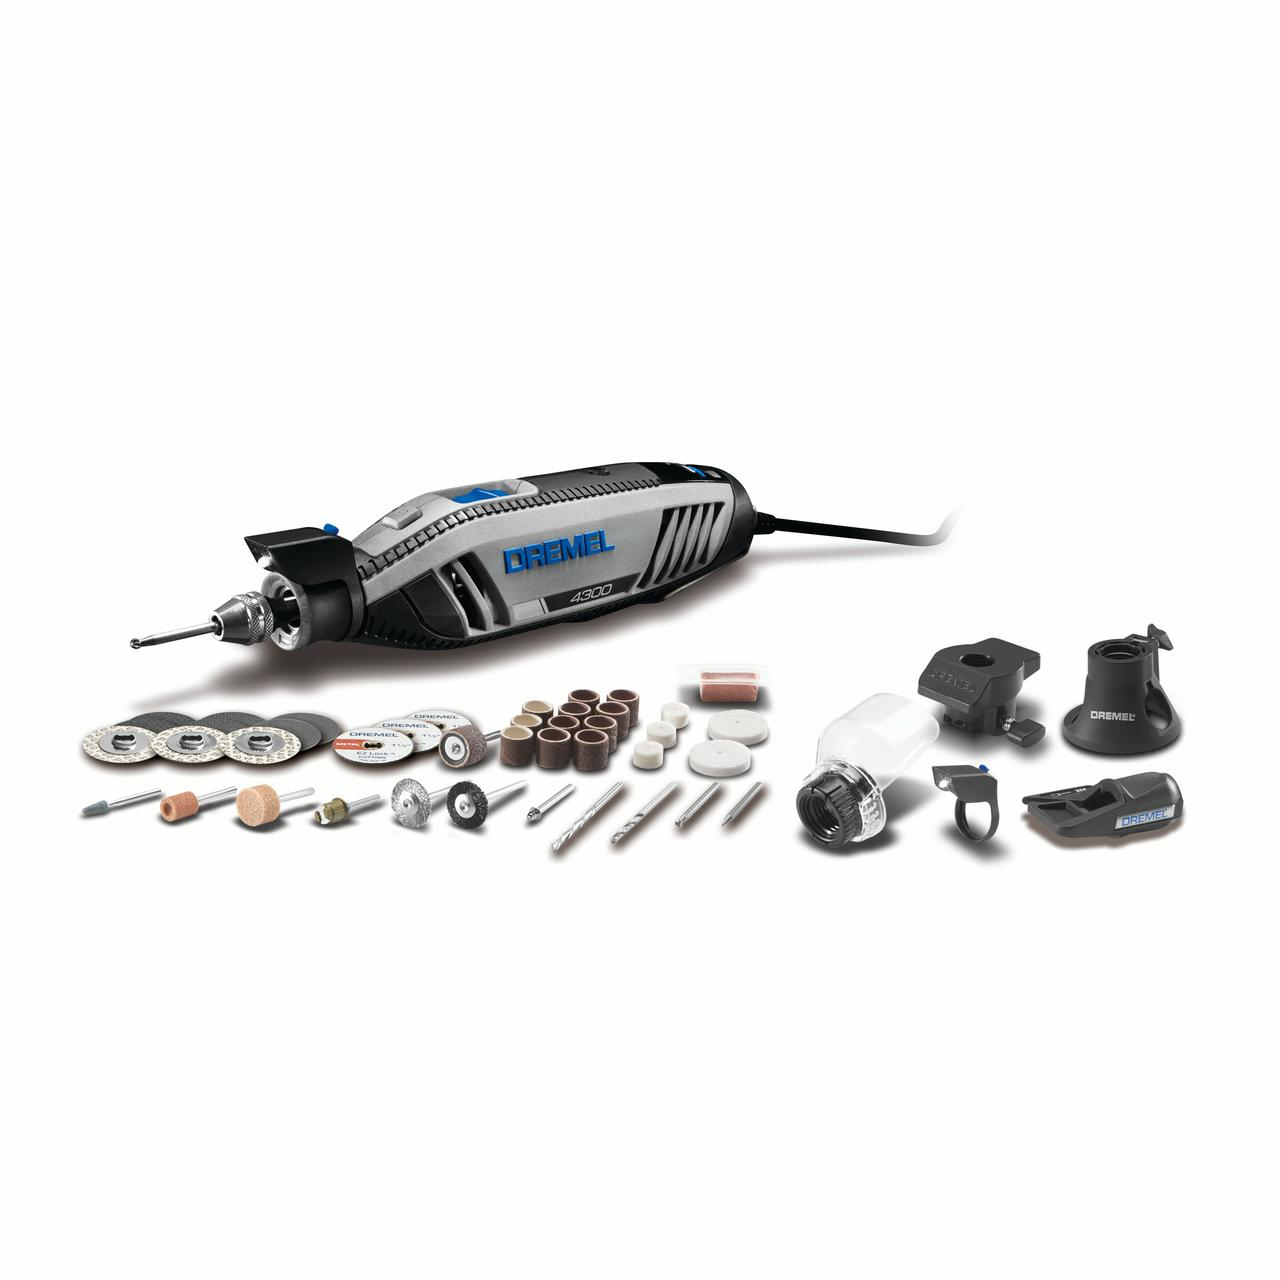 Dremel 4300-5/40 Rotary Tool Kit, 5 Attachments And 40 Accessories